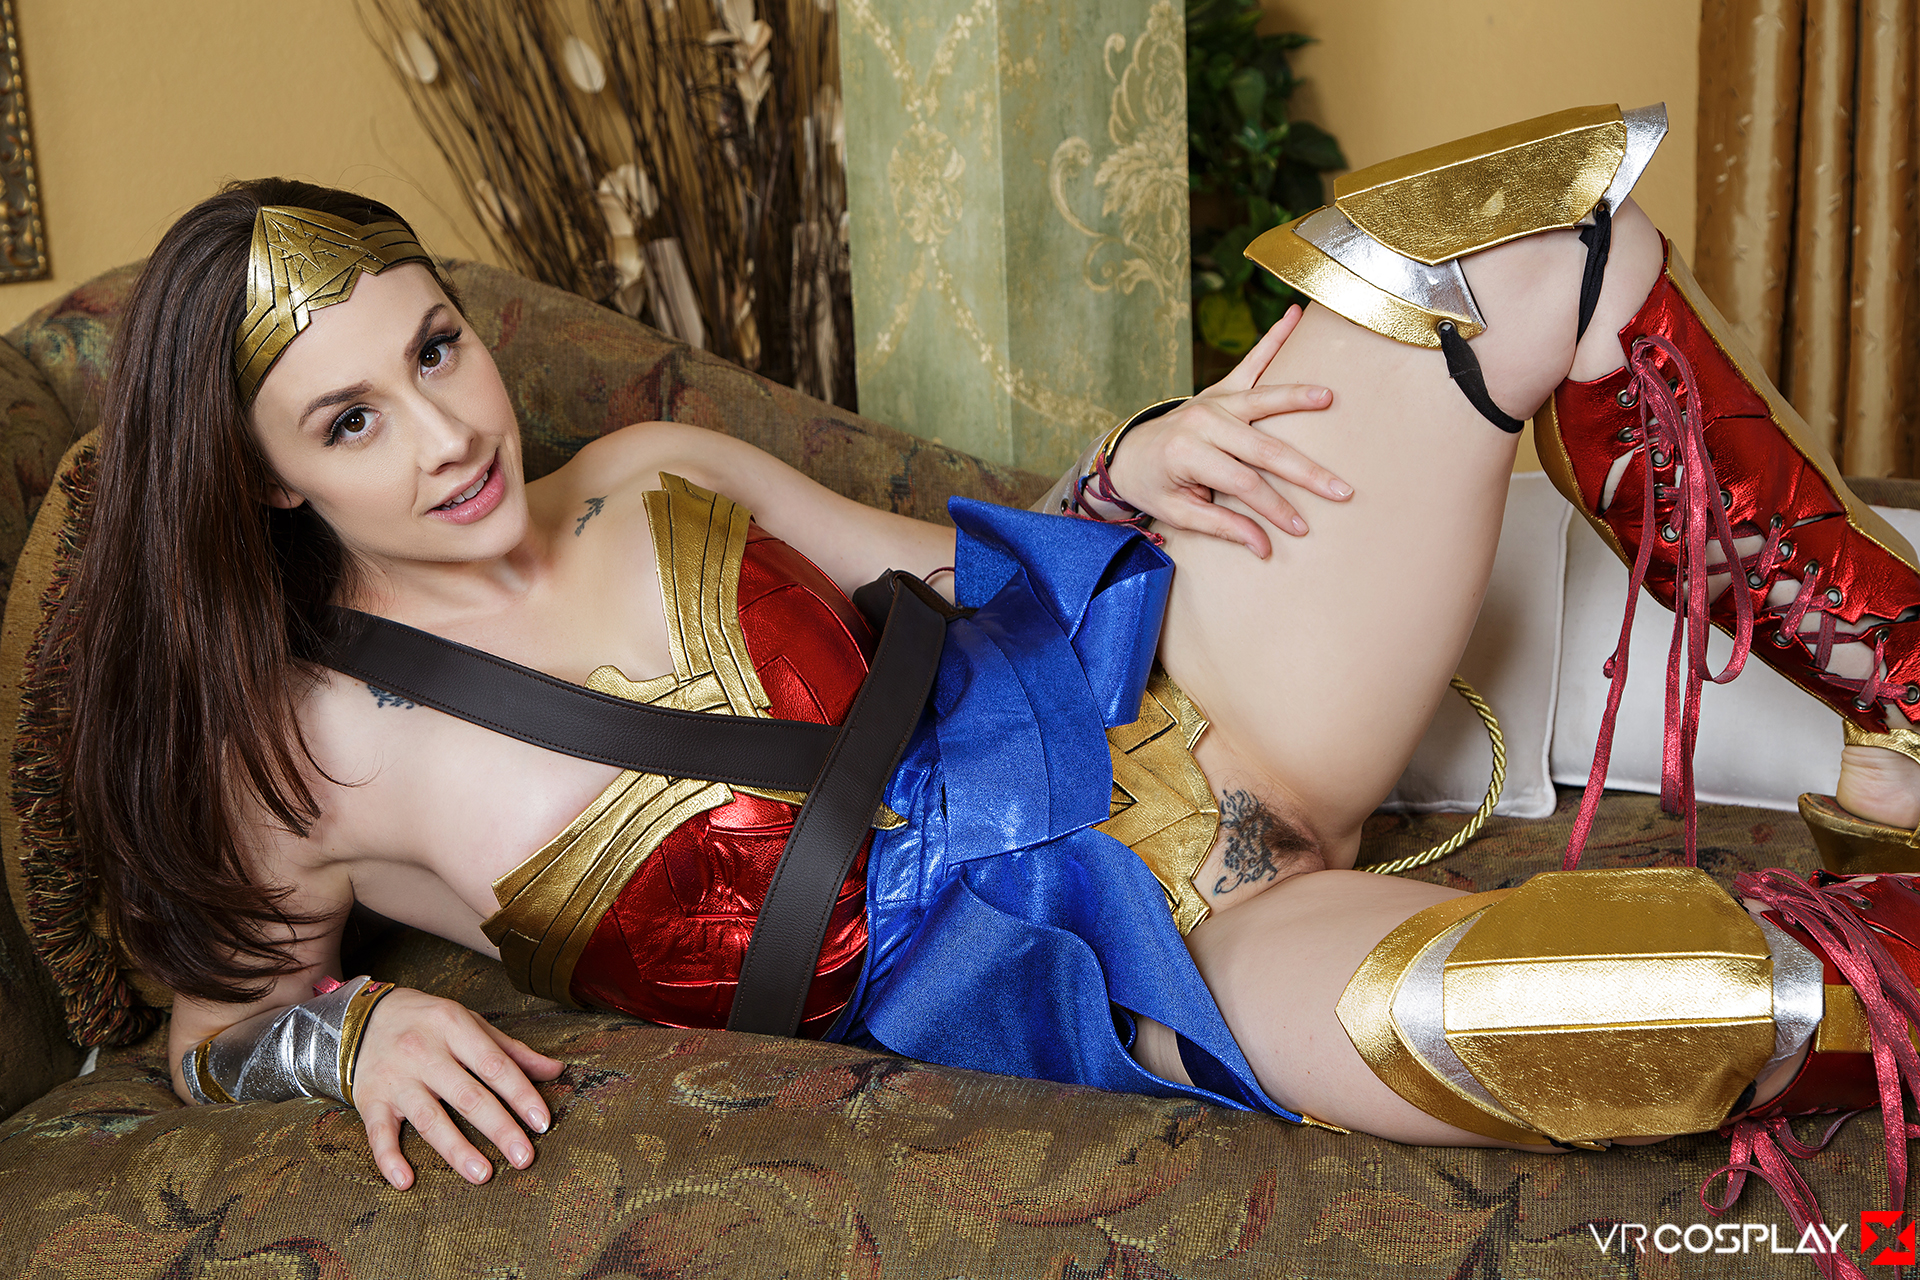 Wonder Woman Vr Porn Cosplay Starring Chanel Preston -6222